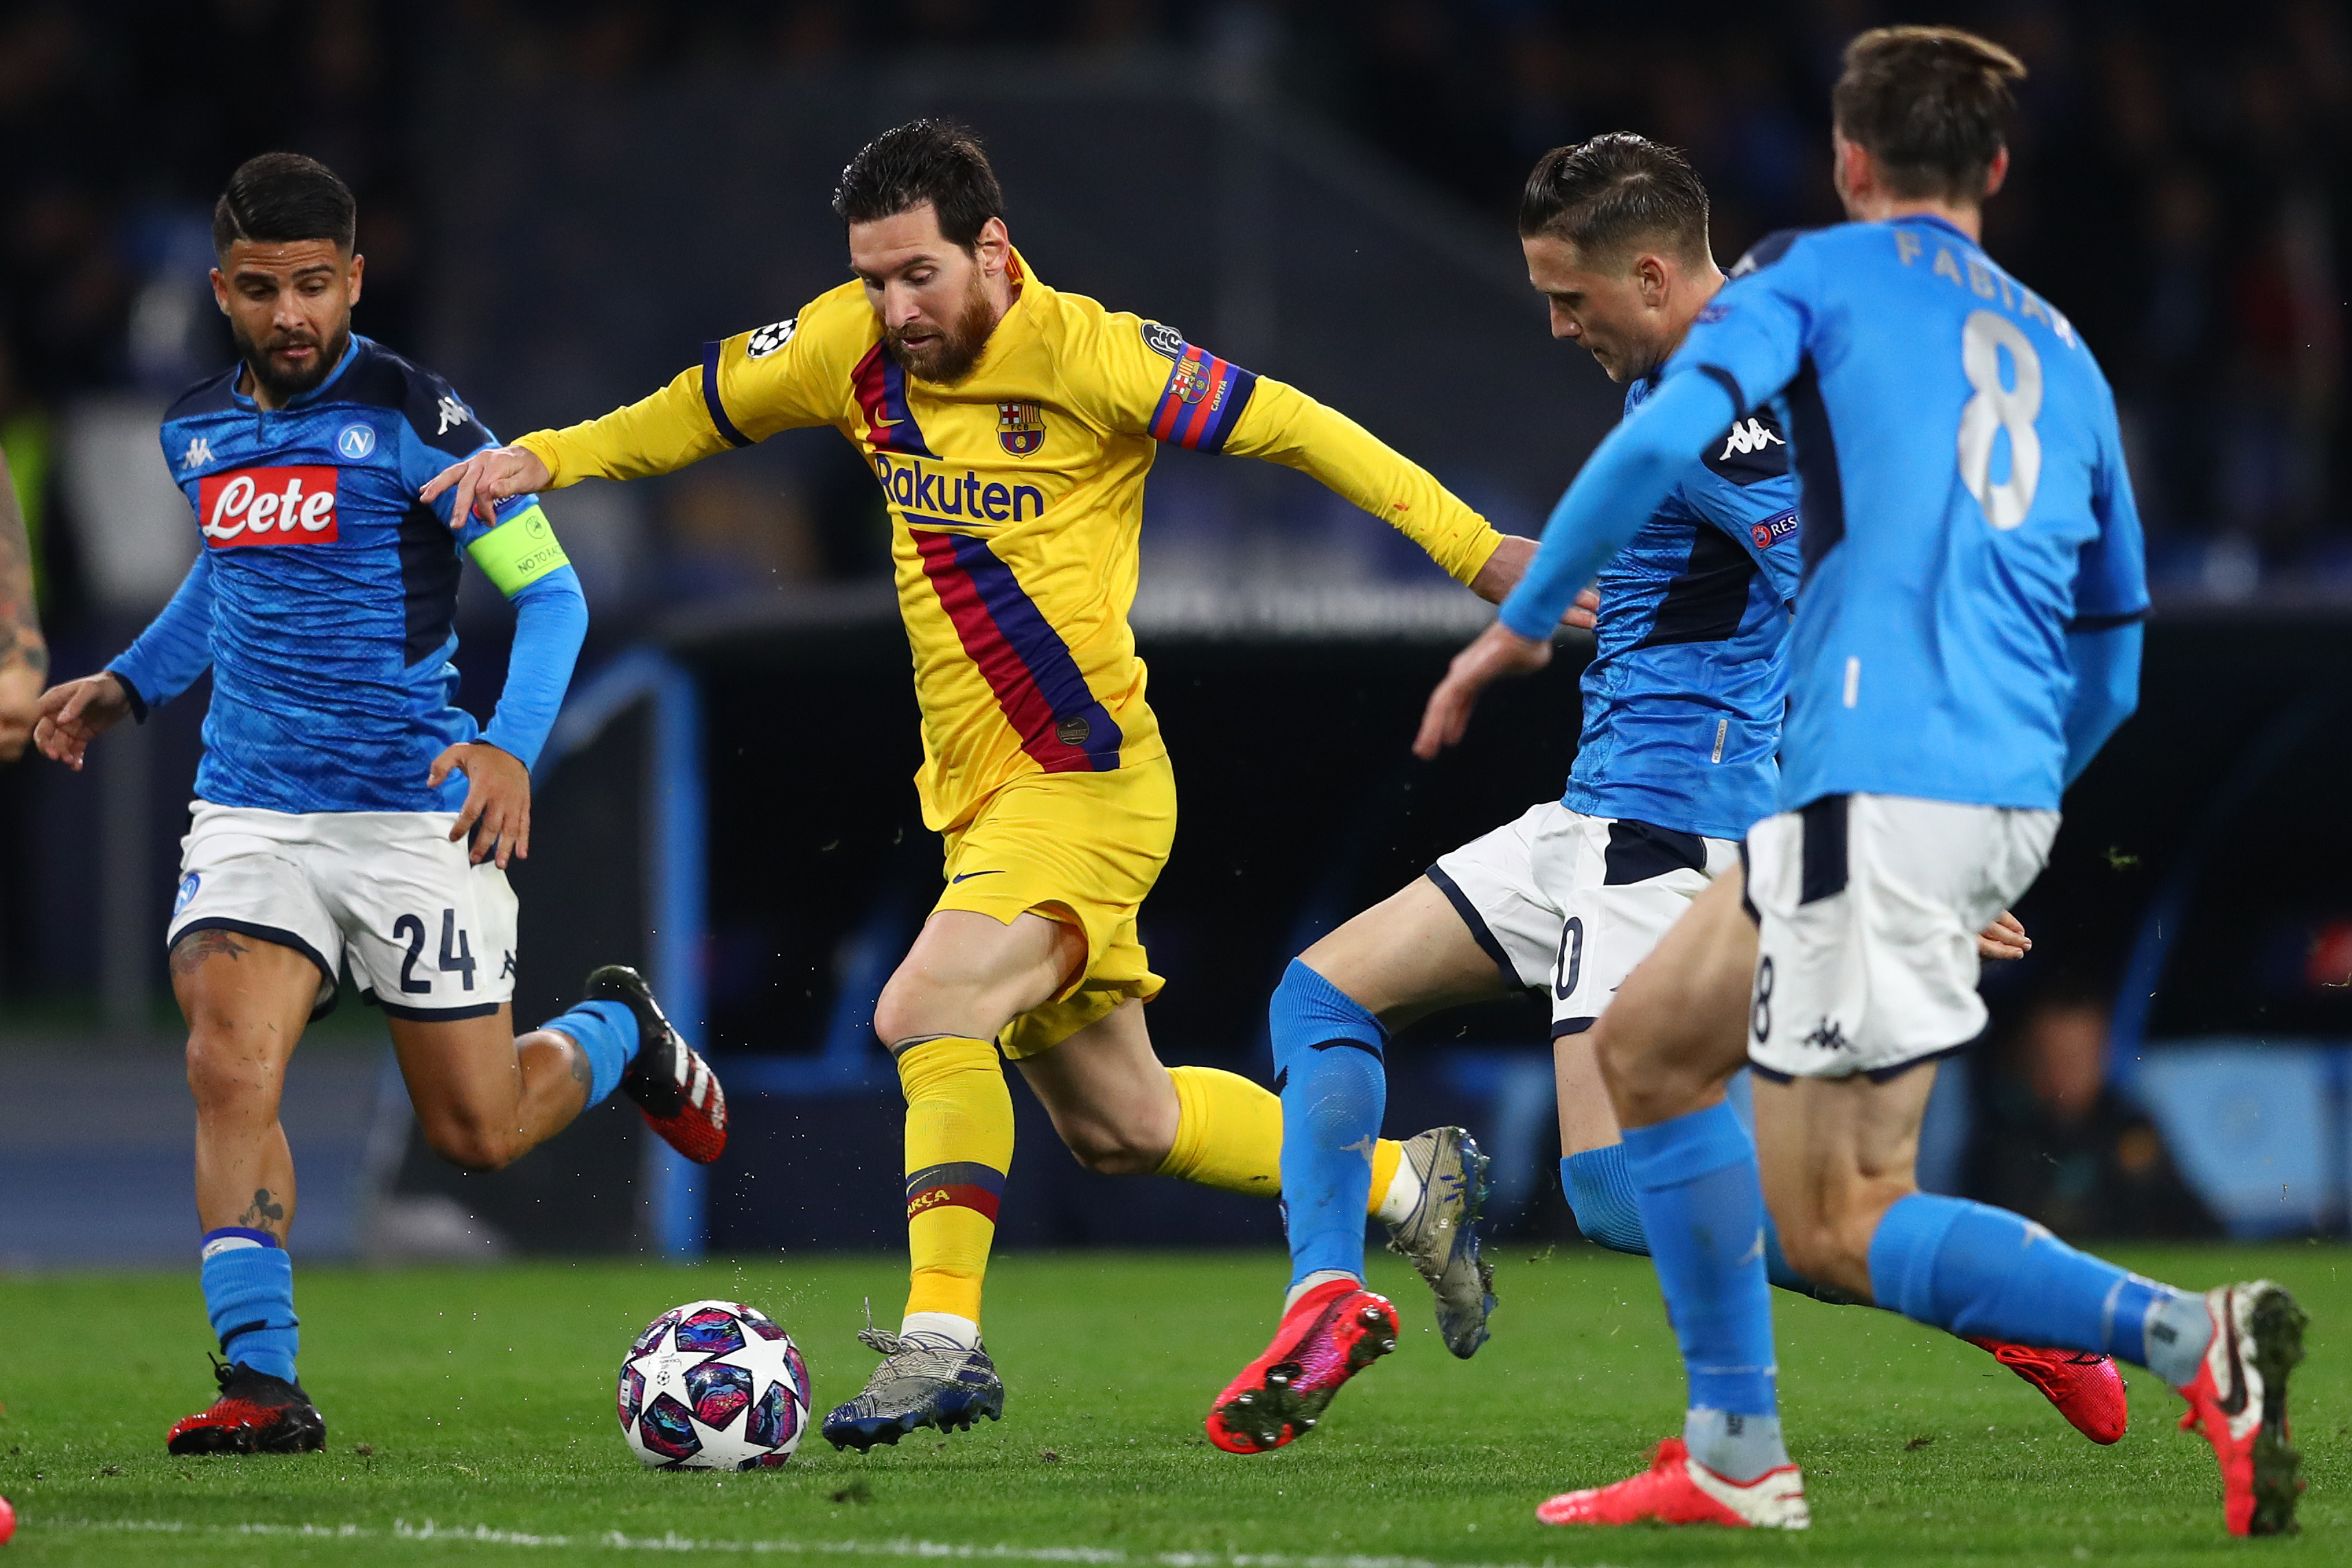 Manchester City ready to give up five players for Messi who is in action in the picture